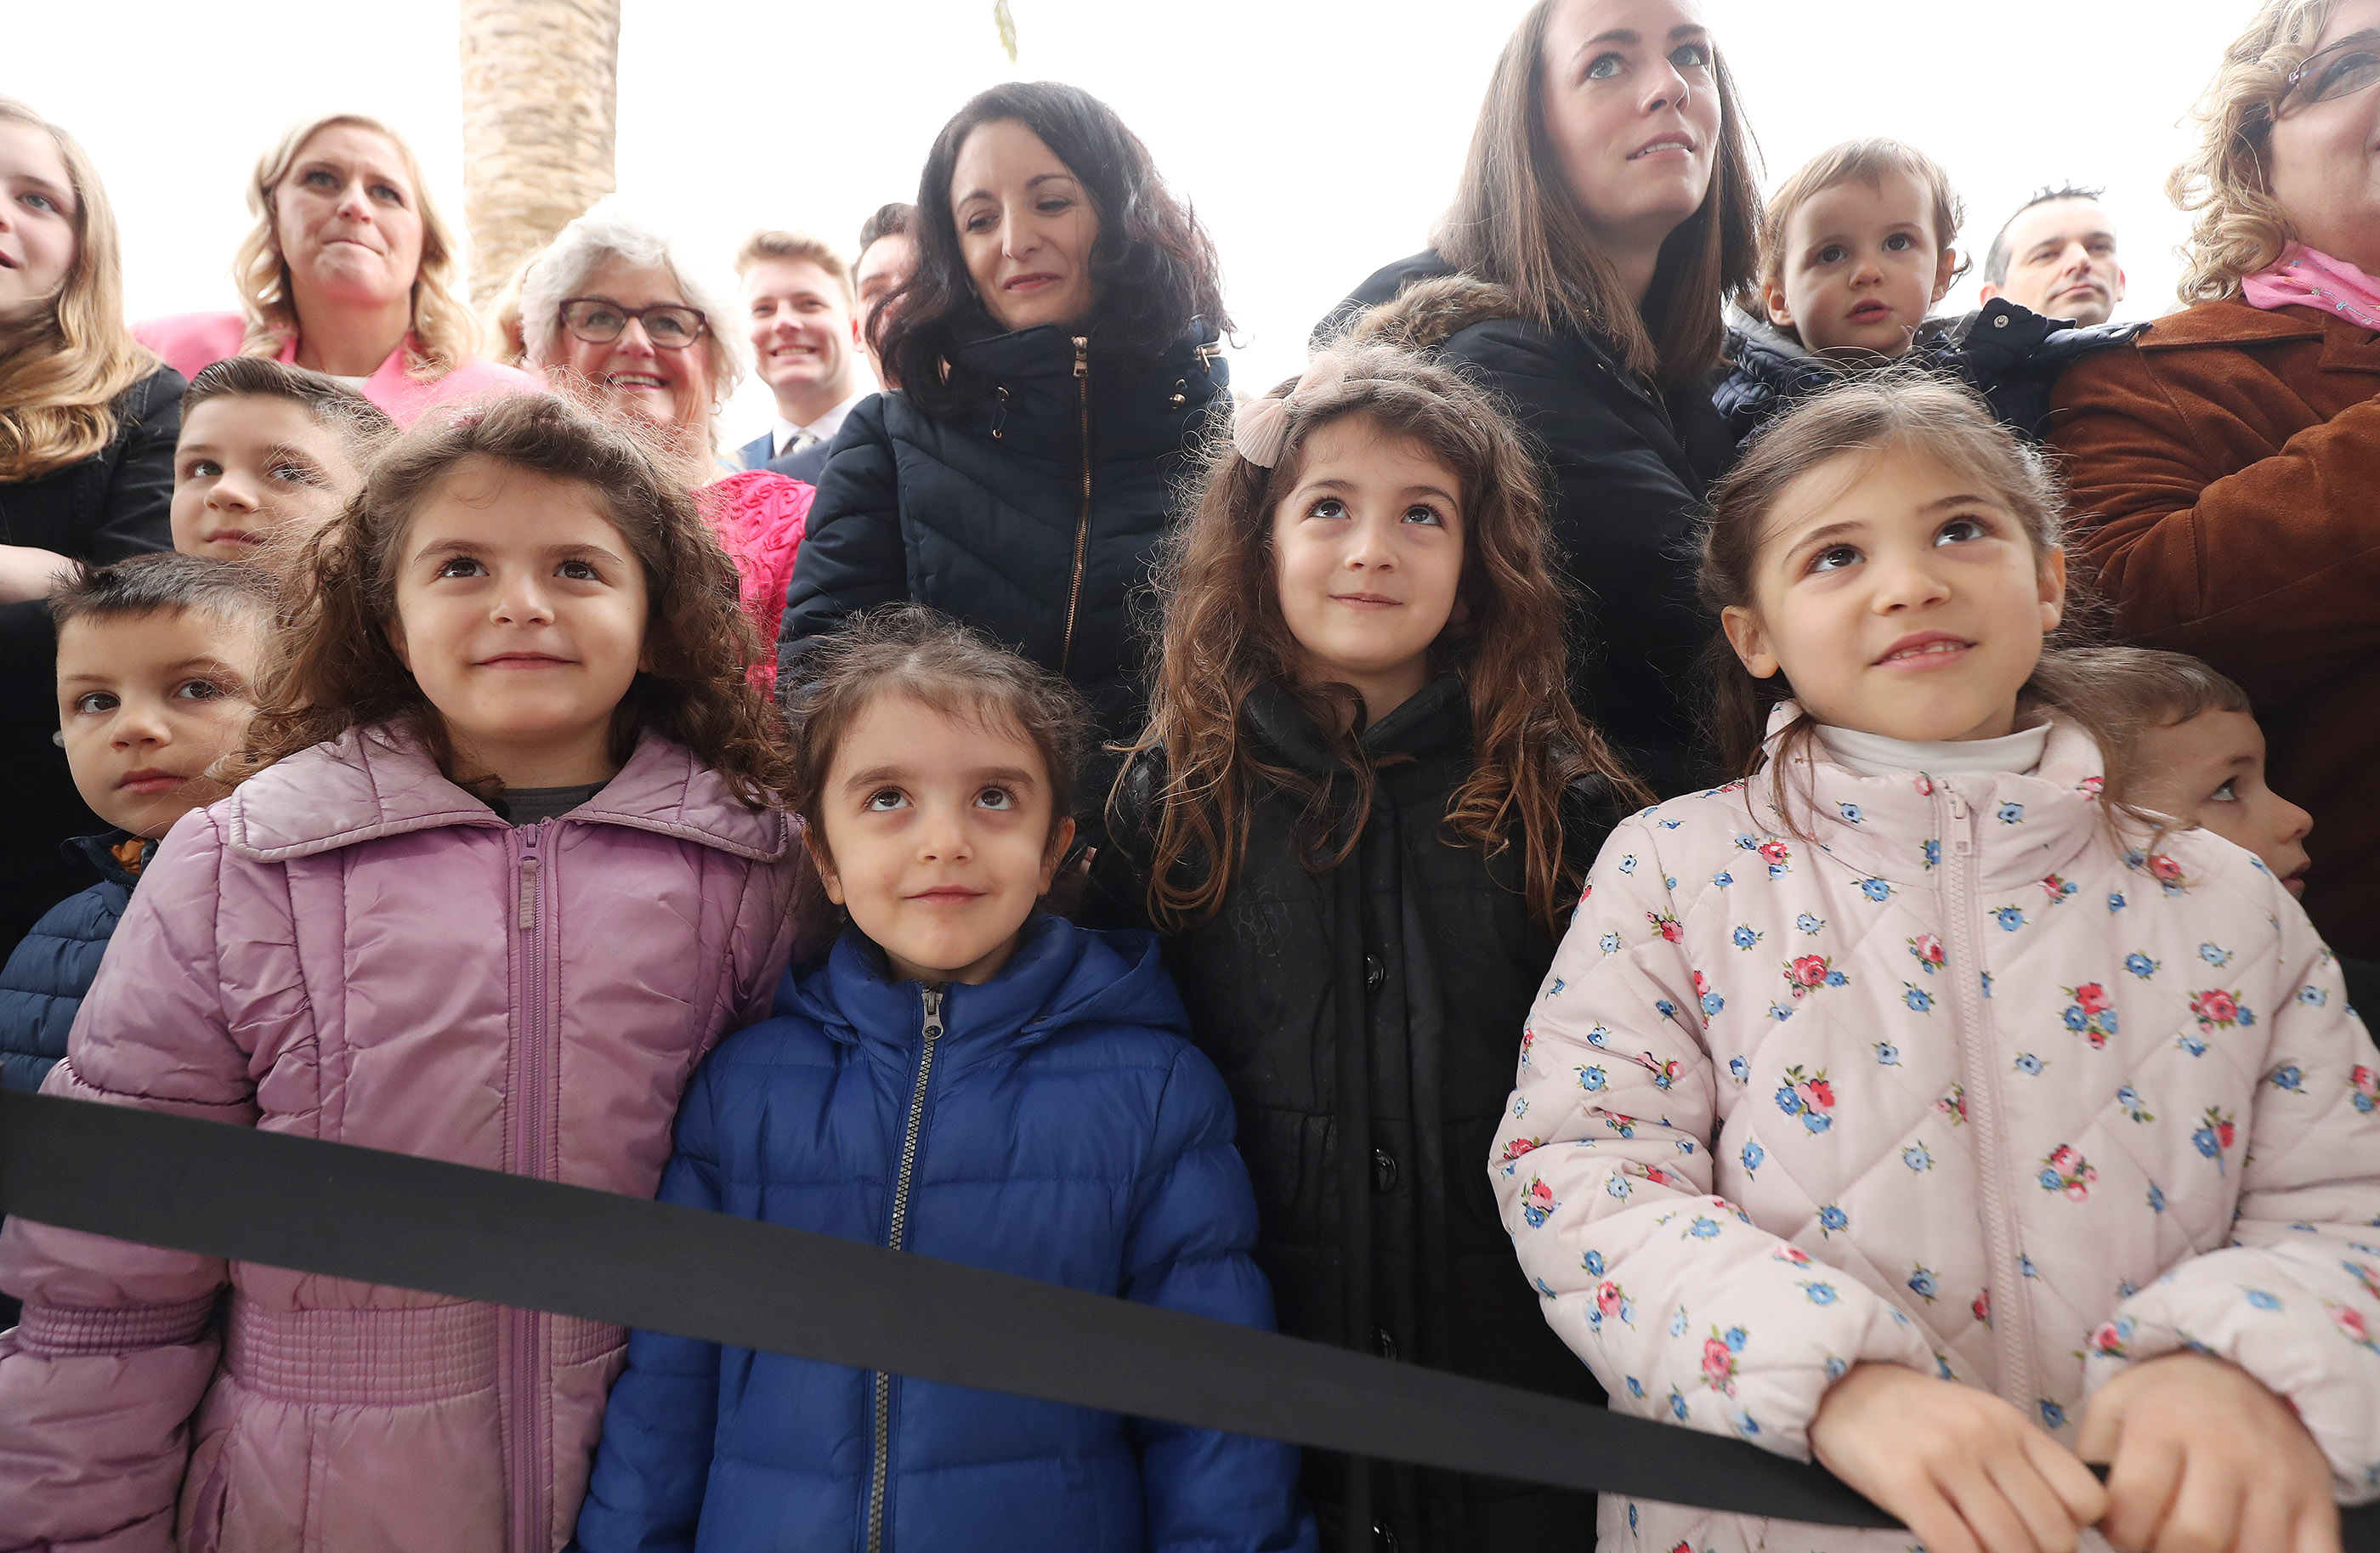 Children wait for the cornerstone ceremony during the dedication of the Rome Italy Temple of The Church of Jesus Christ of Latter-day Saints in Rome, Italy, on Sunday, March 10, 2019.